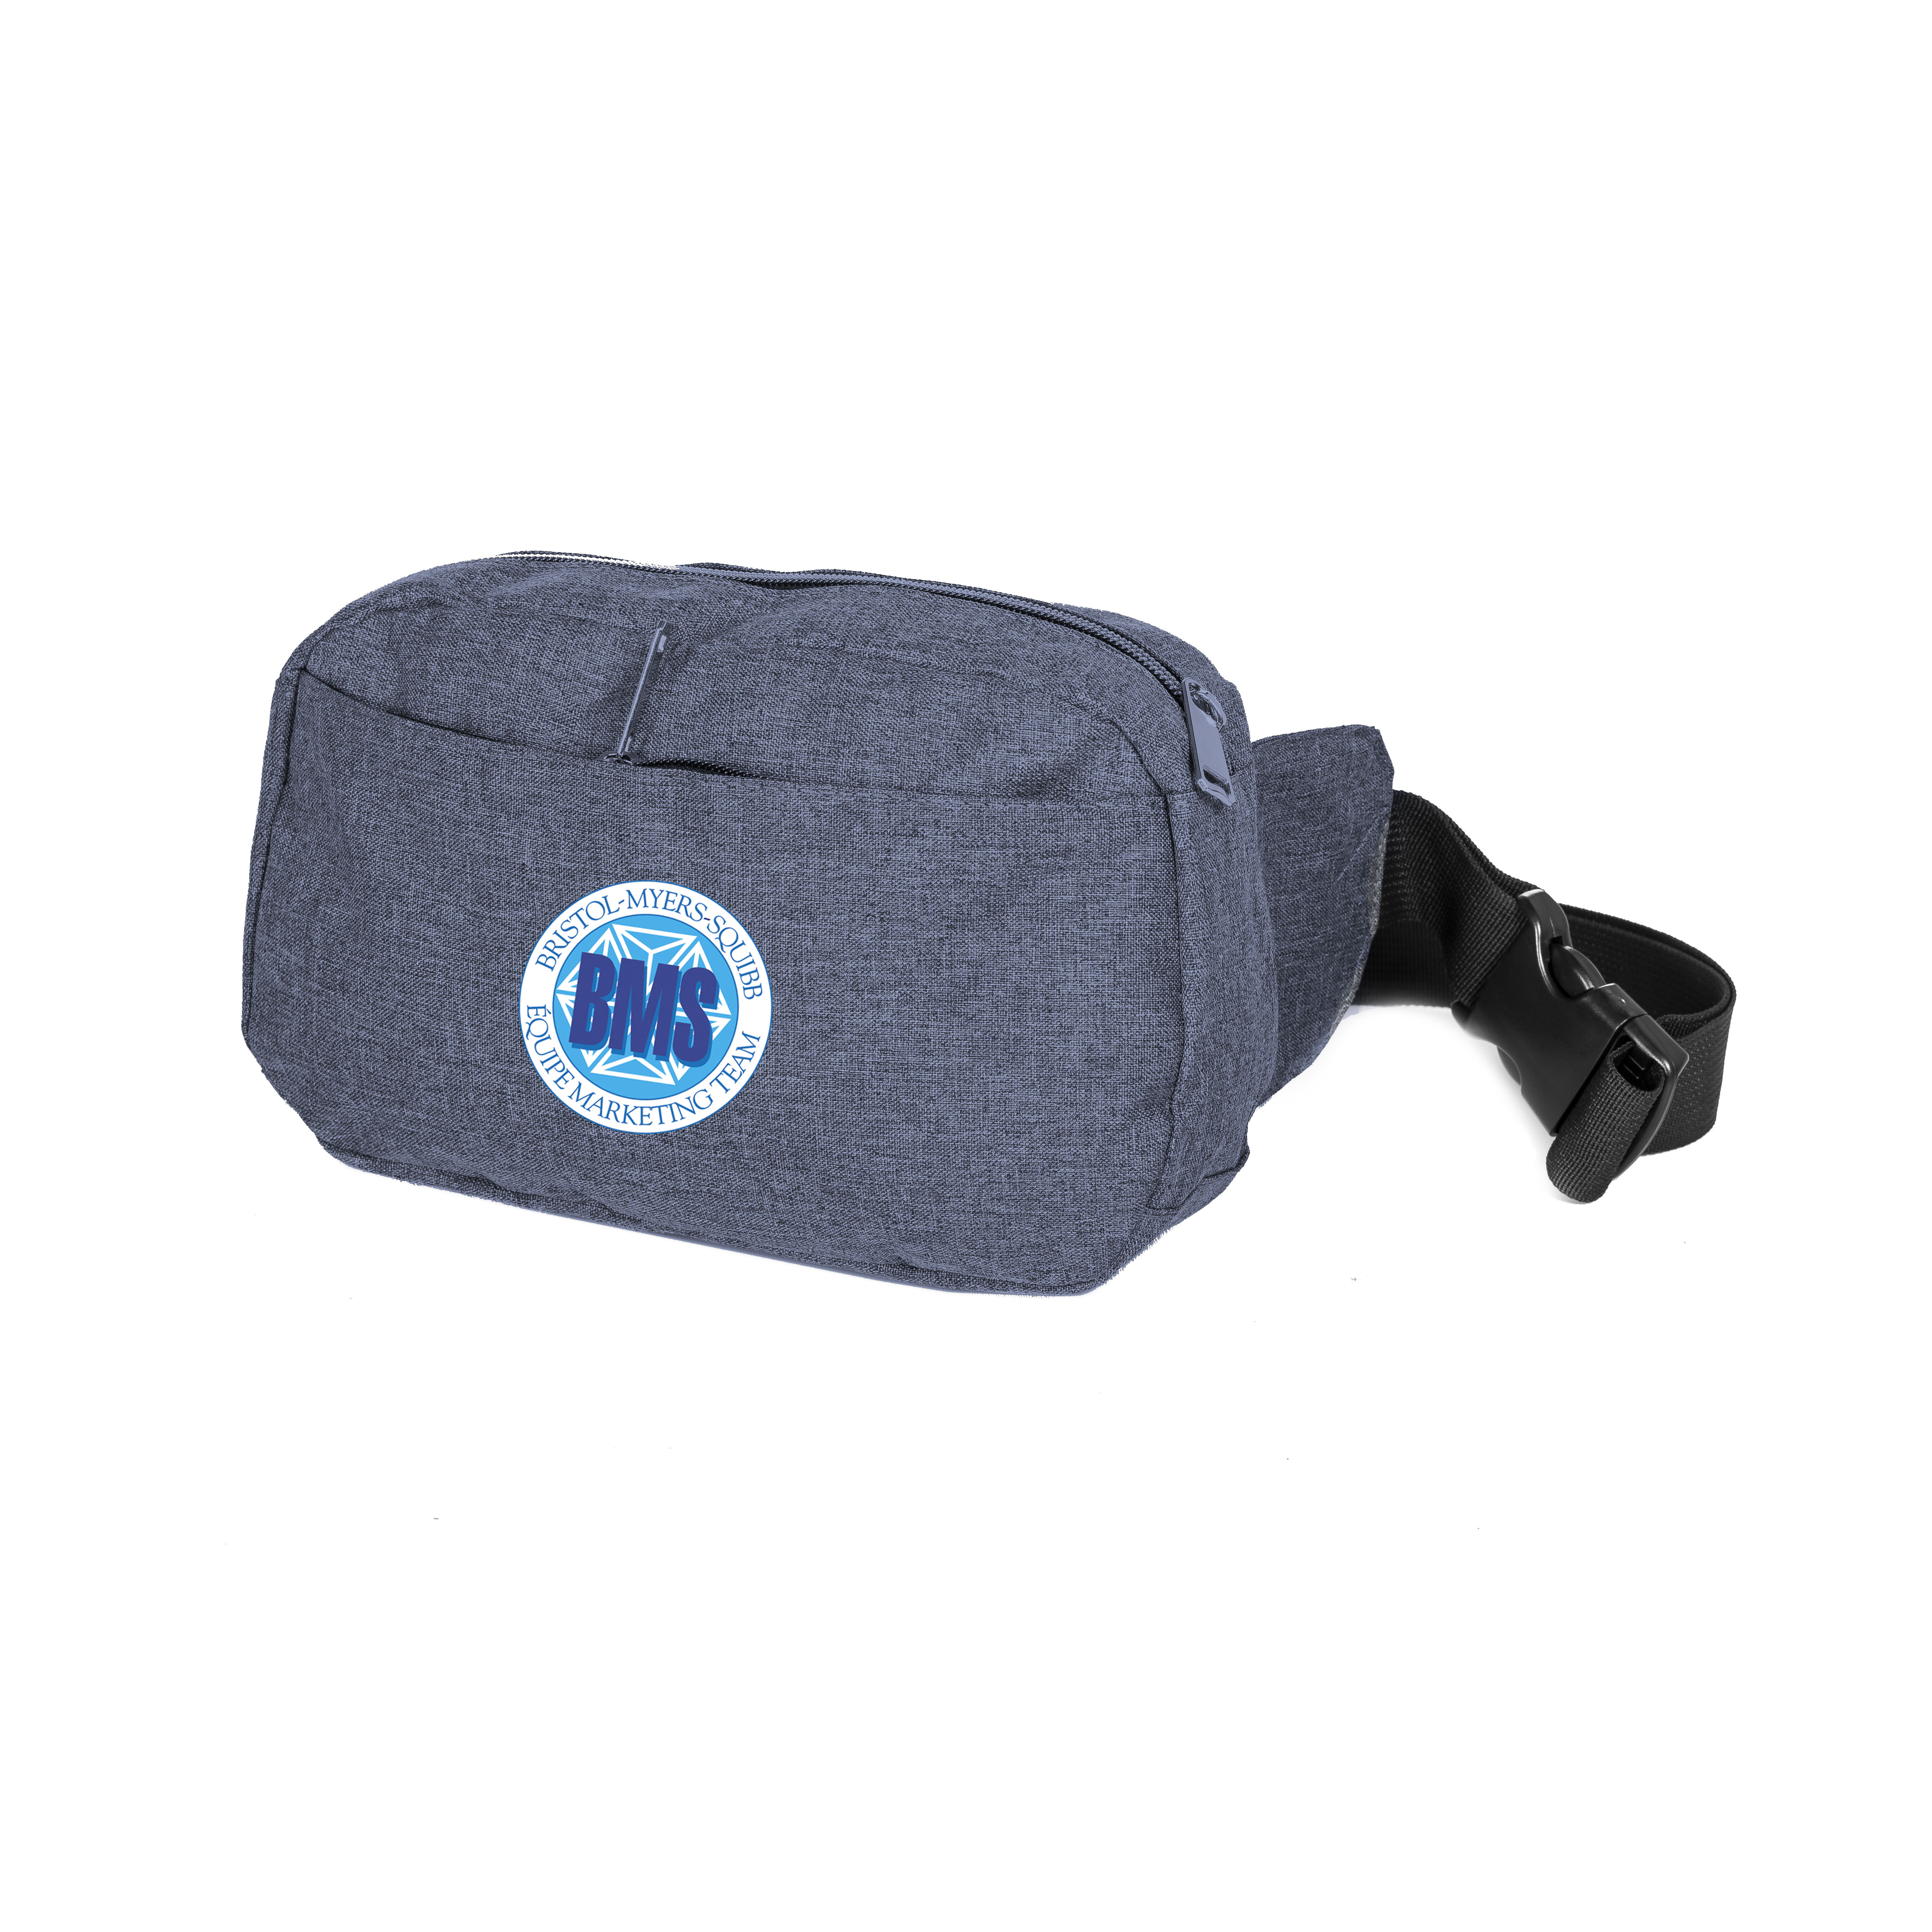 SPENCER THREE ZIPPER FANNY PACK